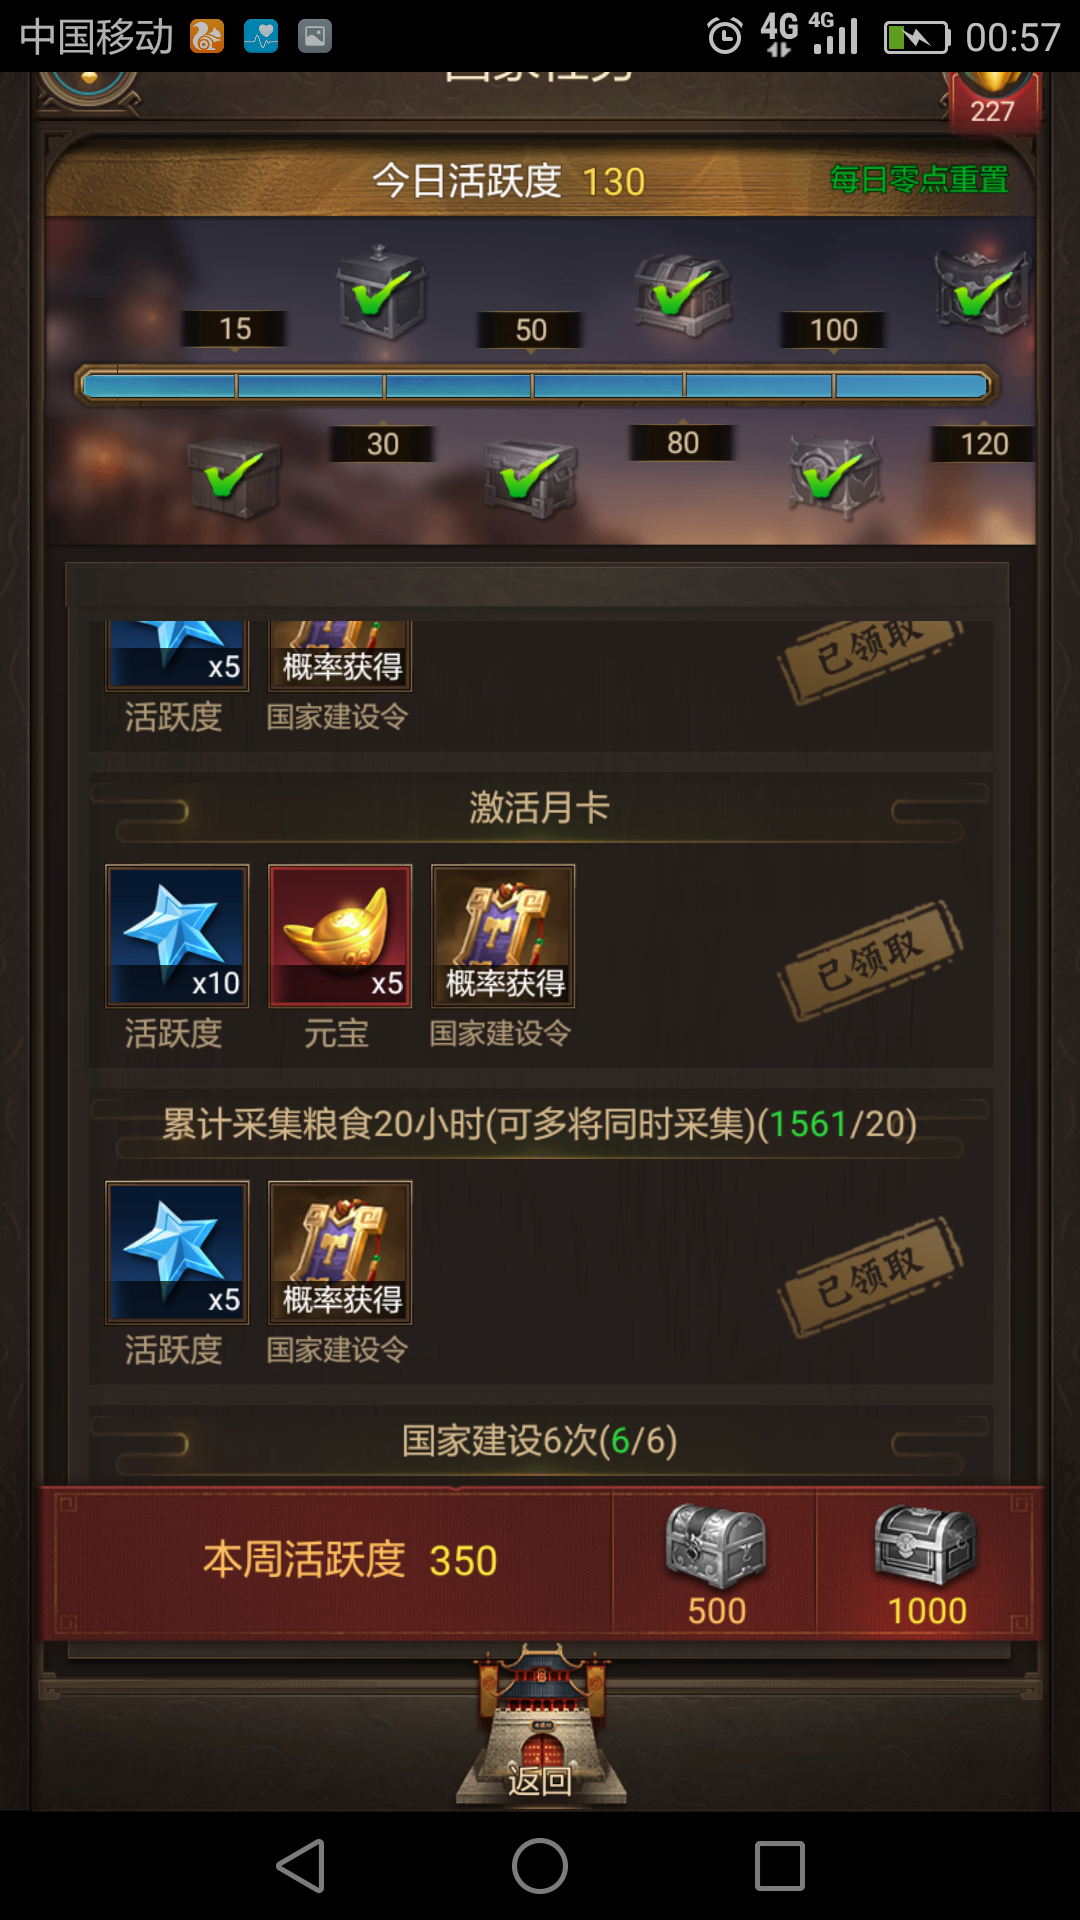 Screenshot_2019-04-04-00-57-52.png